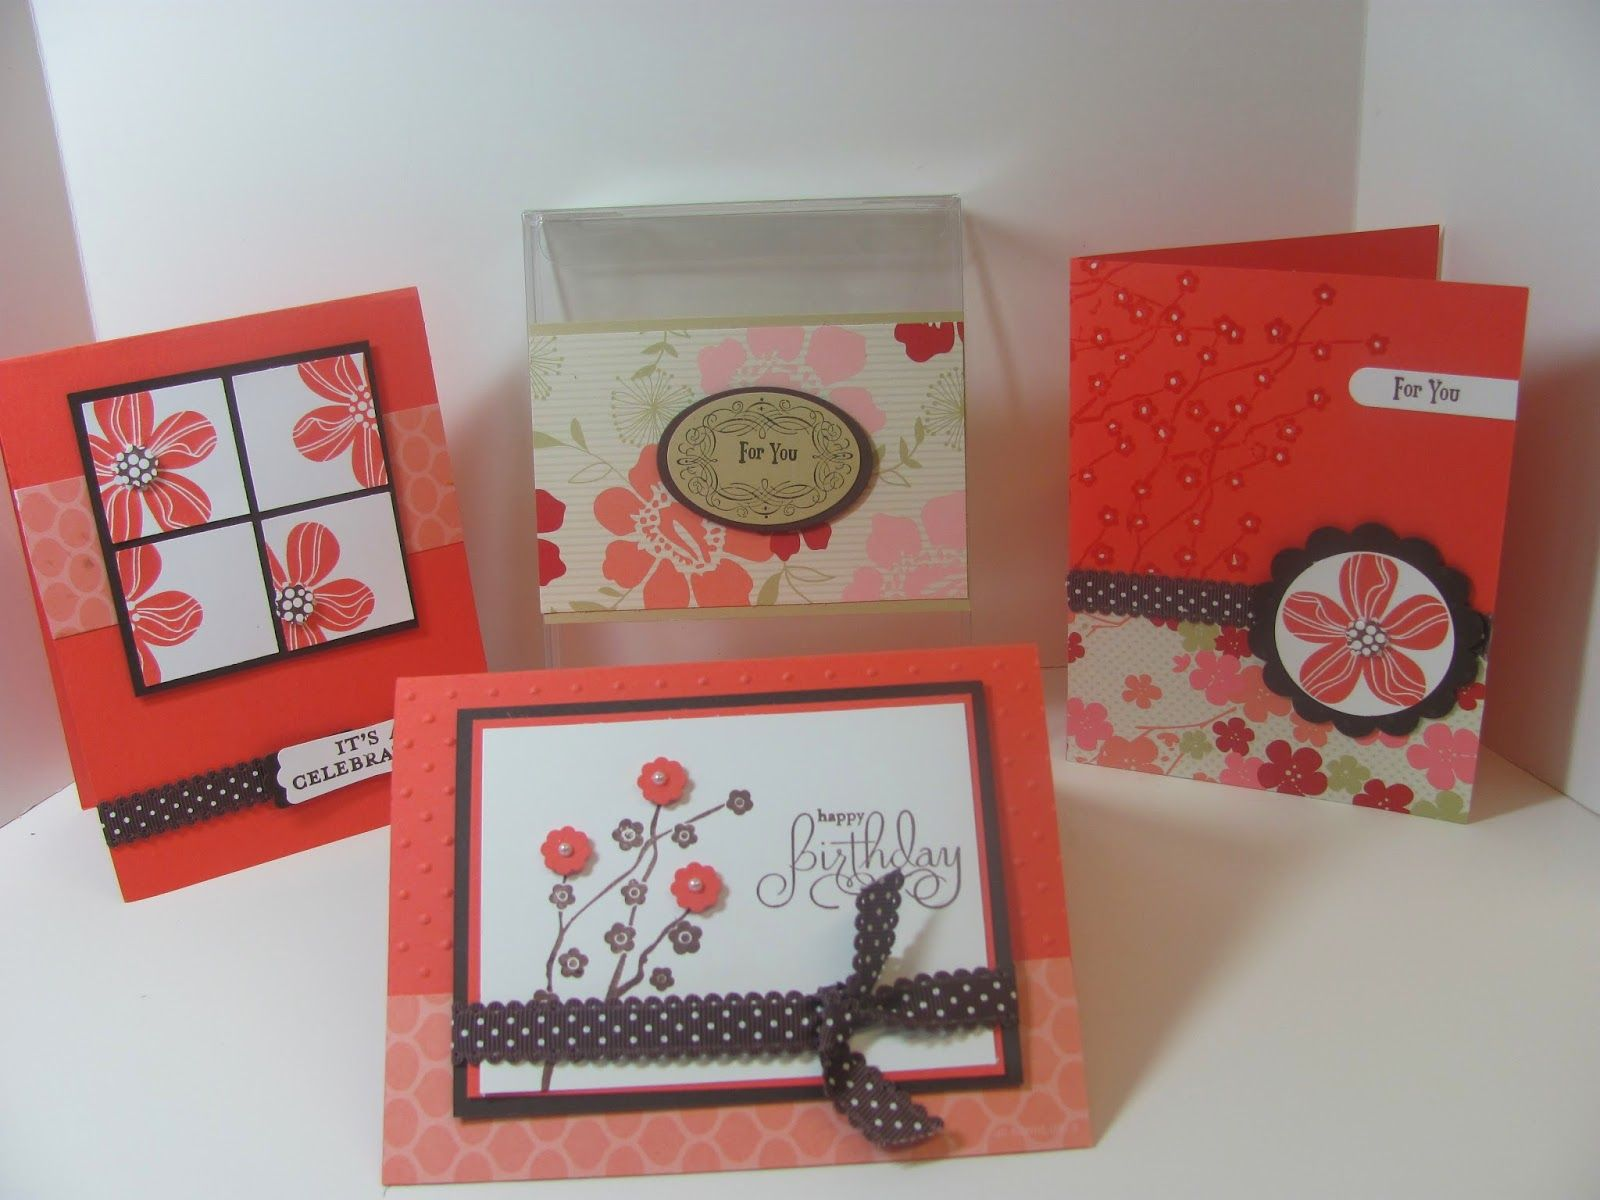 Eastern blooms stamp set personally yours throwback thursday eastern blooms stamp set personally yours throwback thursday greeting card box set kristyandbryce Choice Image